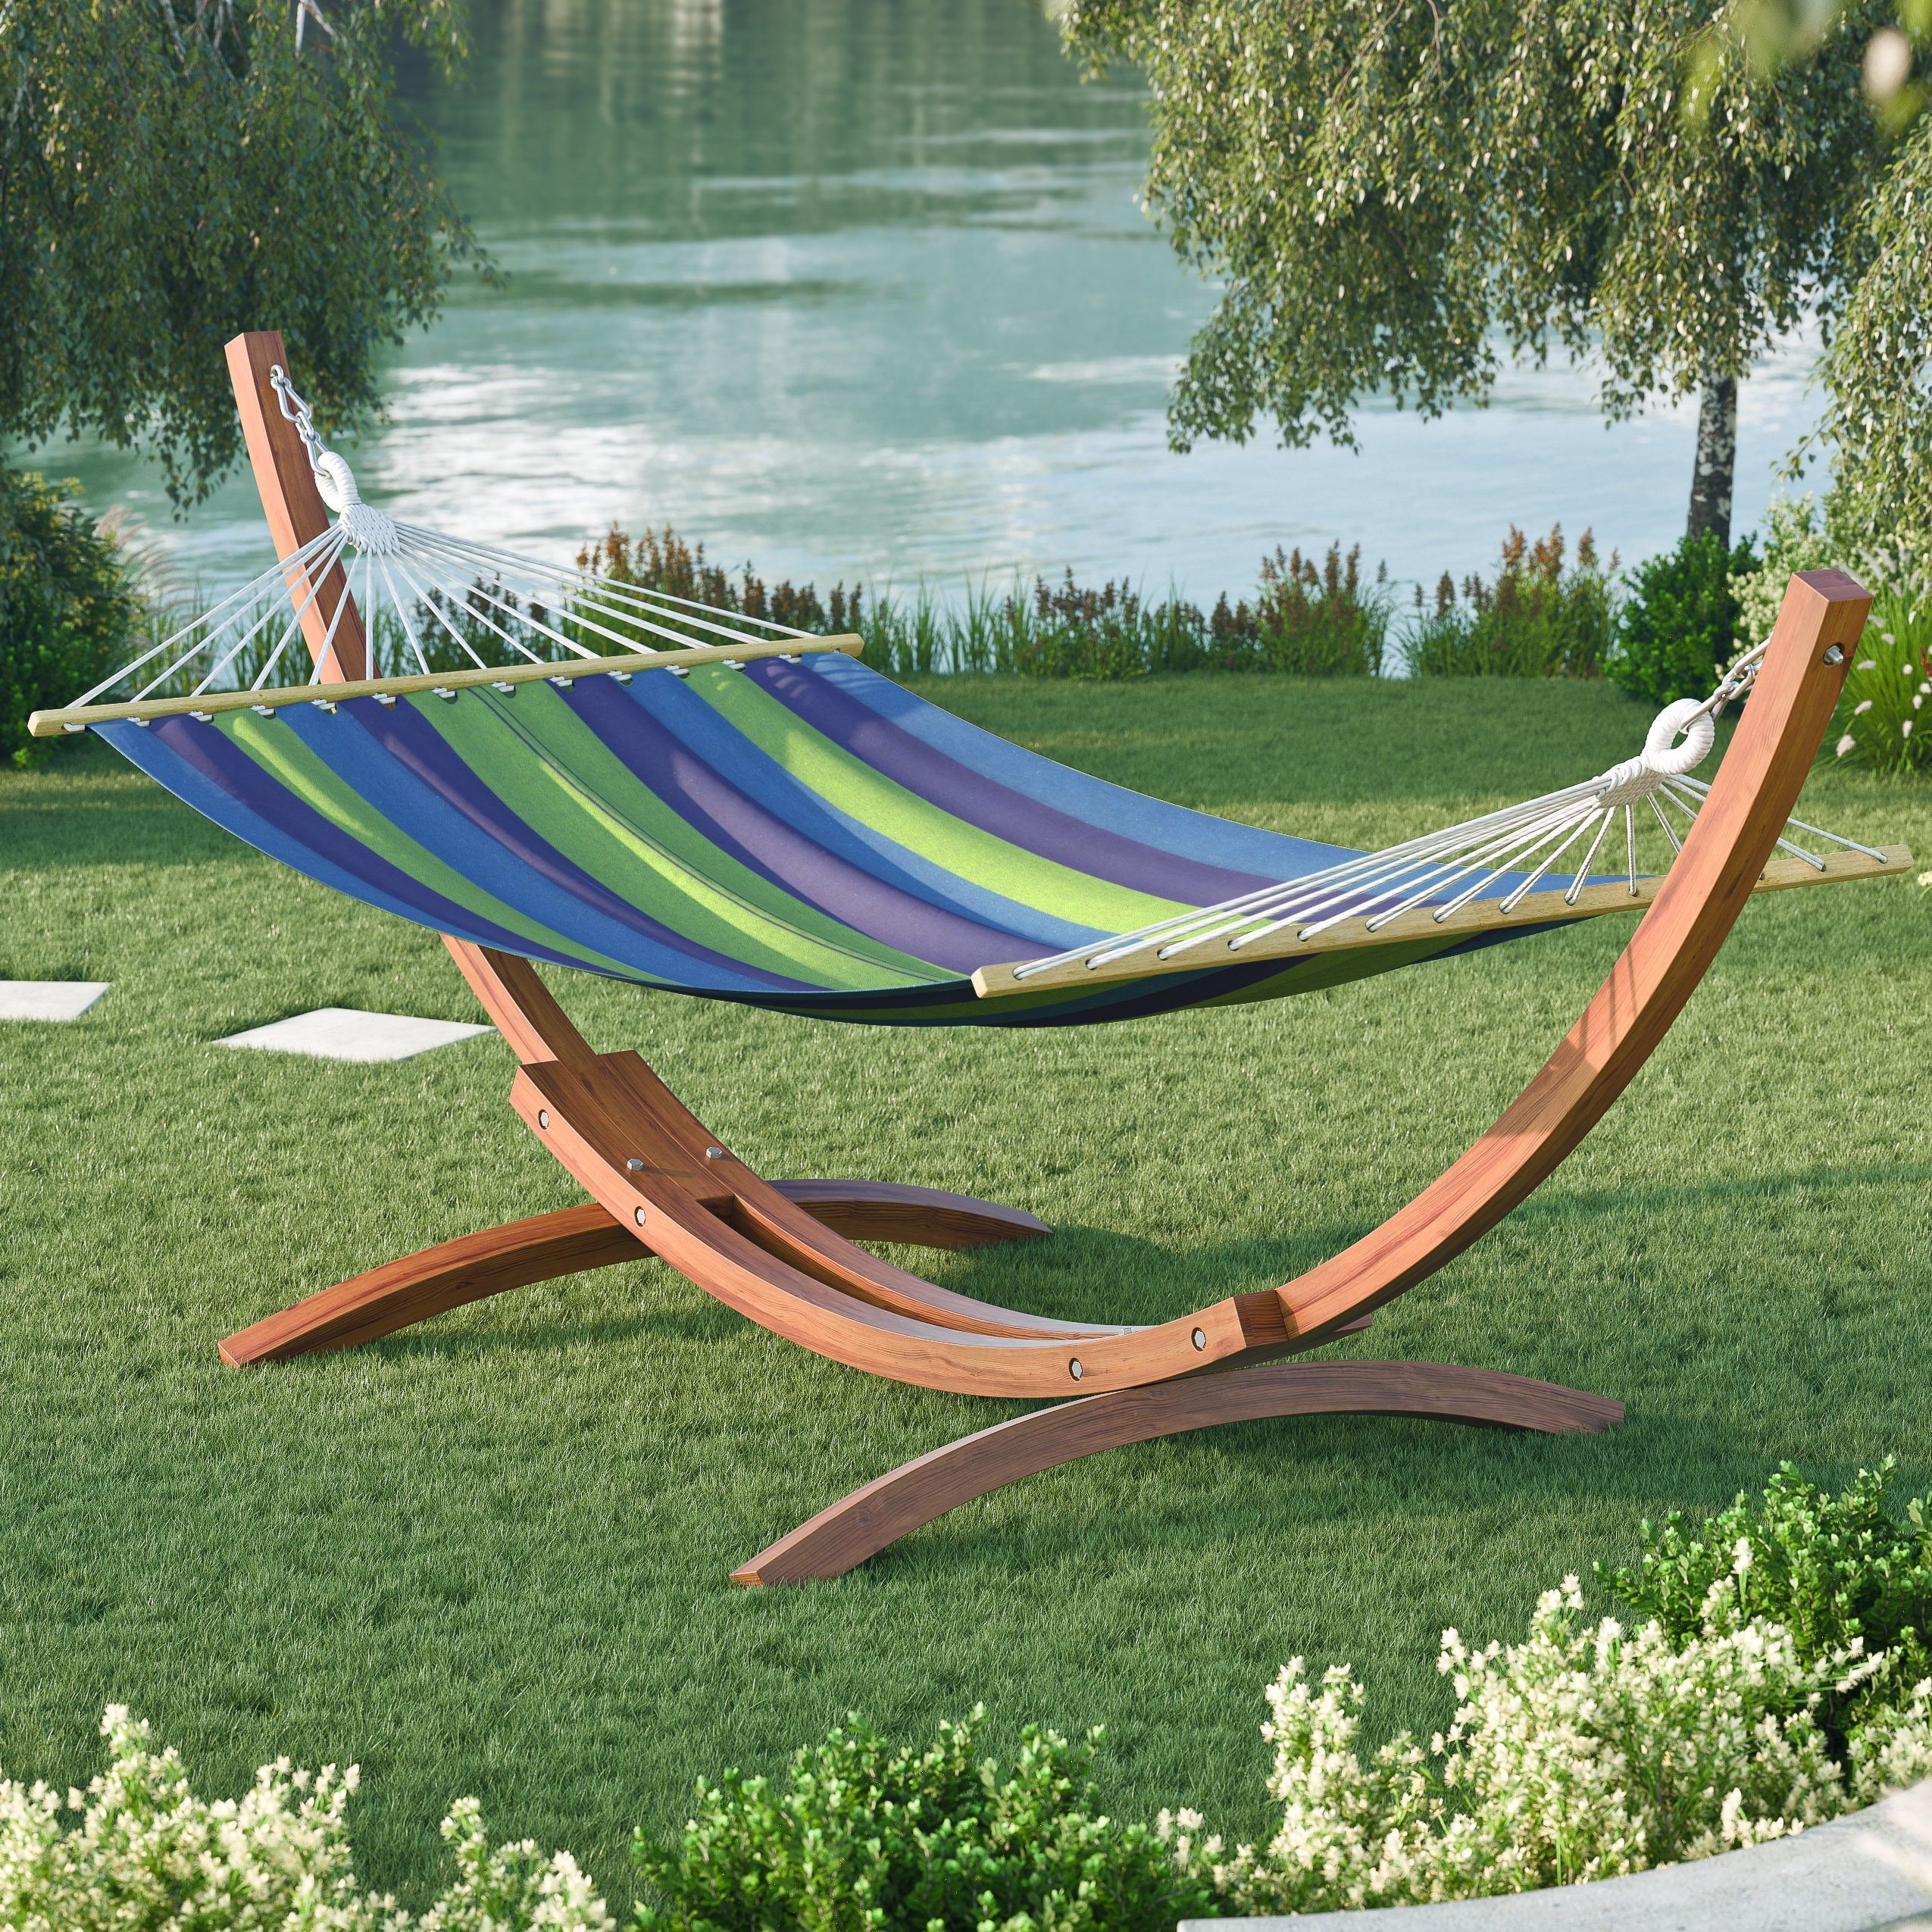 corliving wood canyon freestanding canvas hammock  blue   cotton   pwc 3x4 corliving wood canyon freestanding canvas hammock  blue   cotton      rh   pinterest